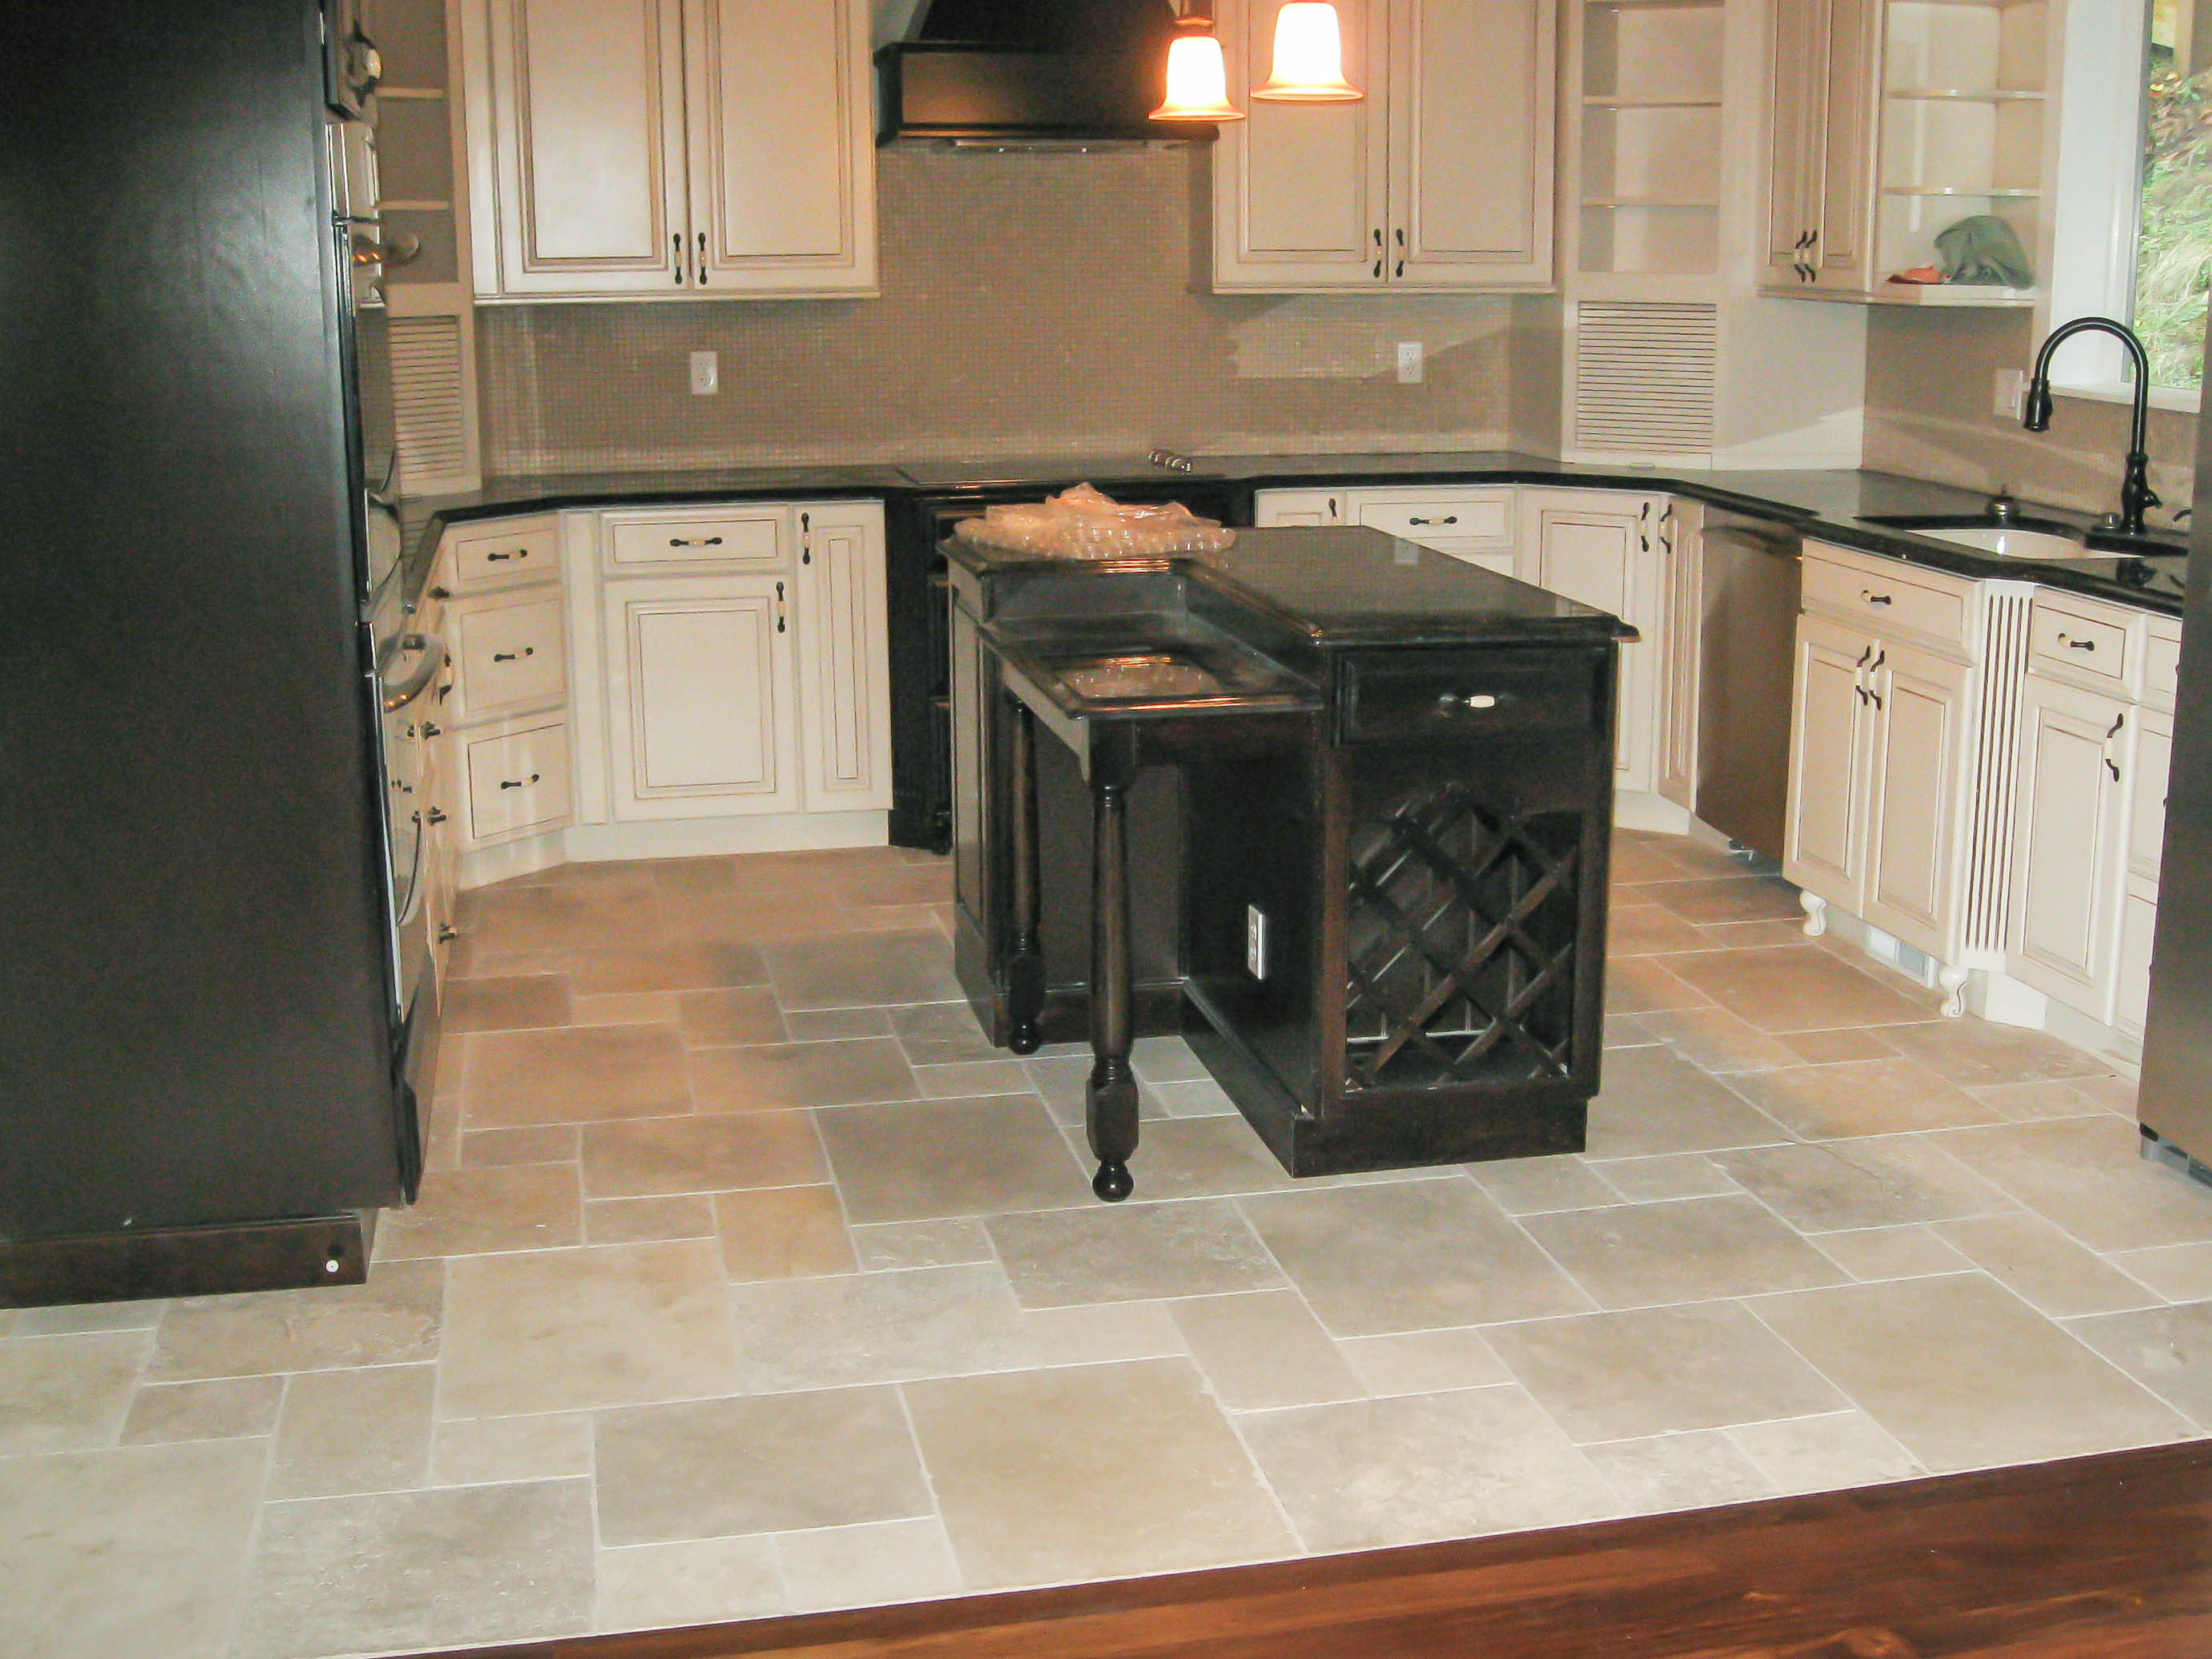 kitchen floors gallery - seattle tile contractor | irc tile services